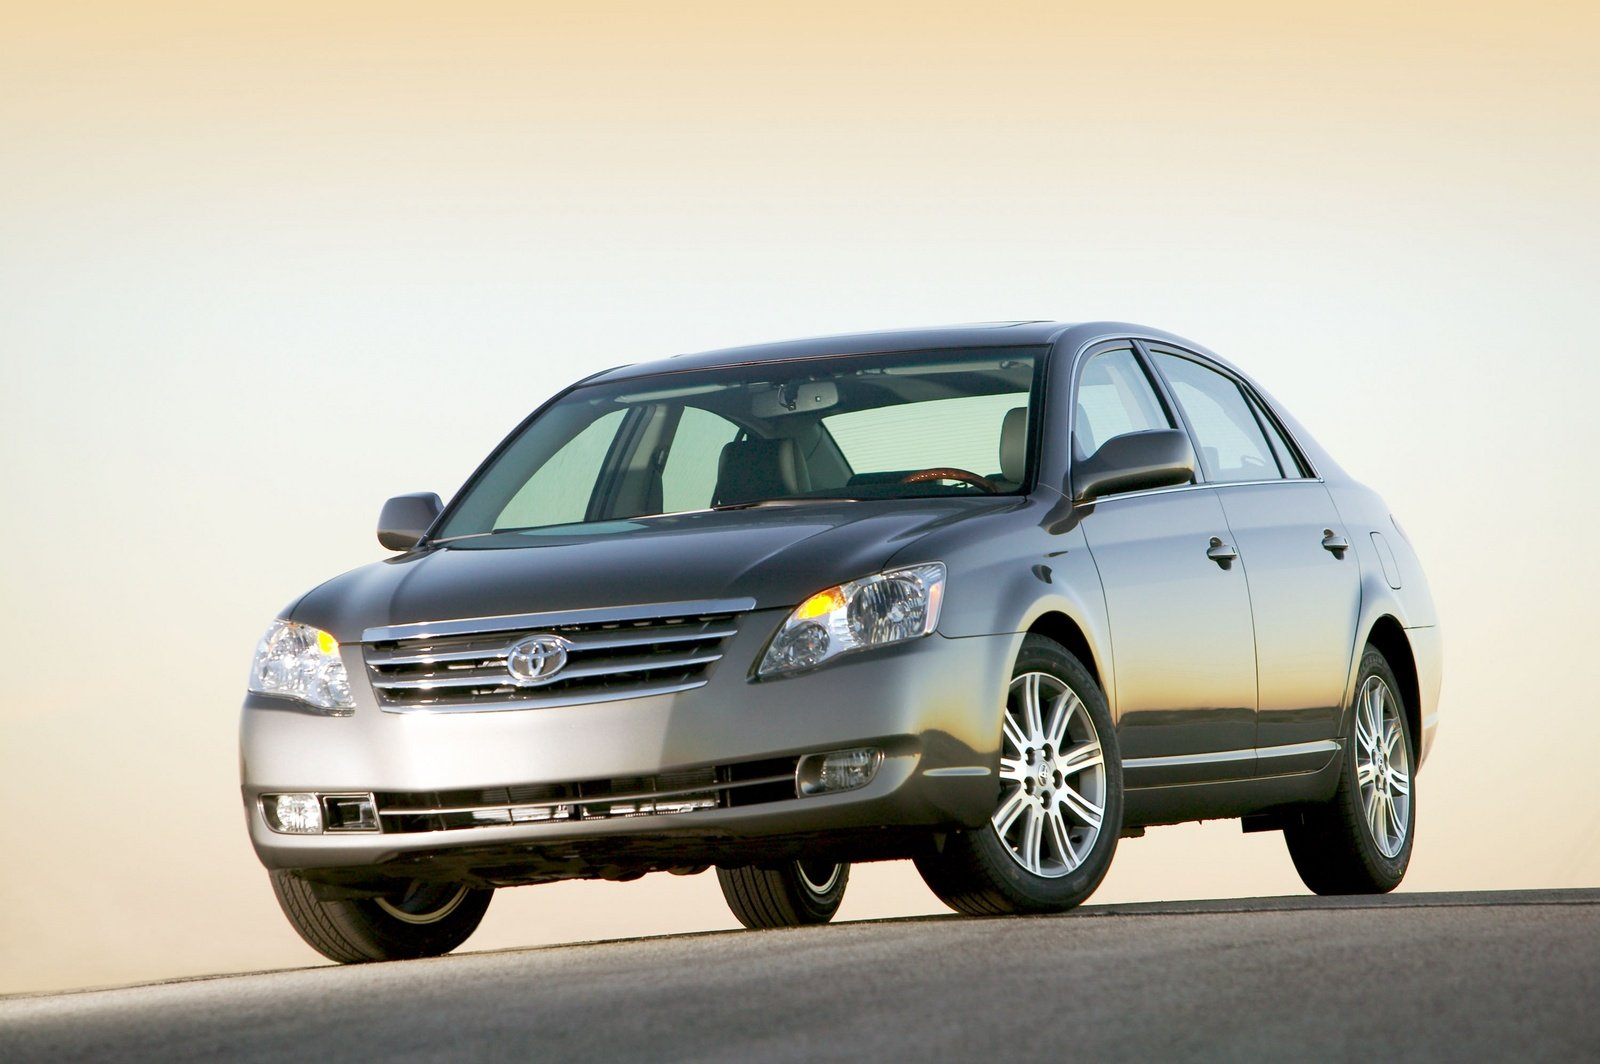 2007 toyota avalon review top speed. Black Bedroom Furniture Sets. Home Design Ideas